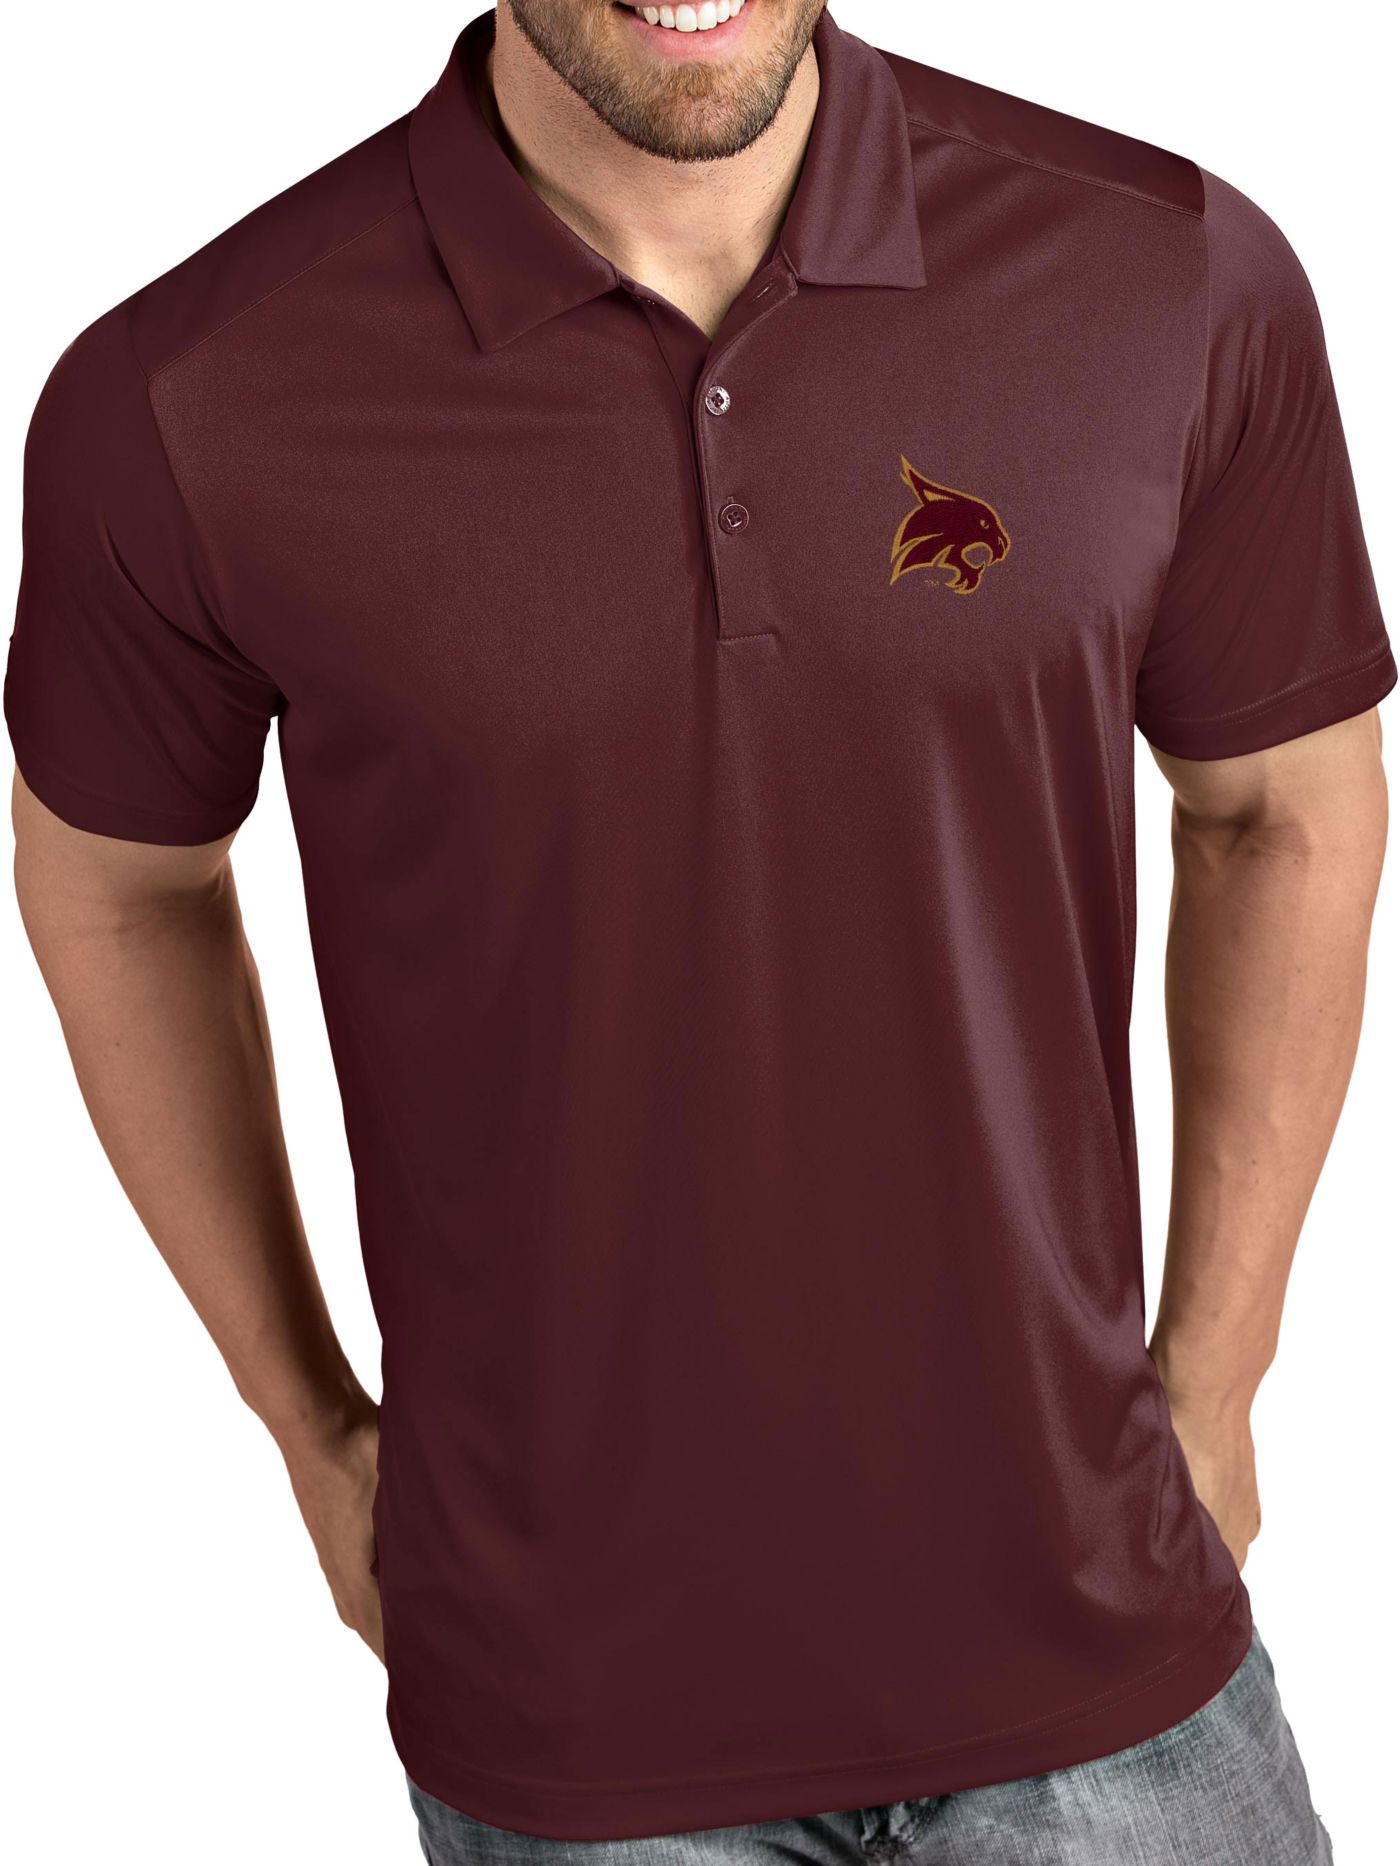 Antigua Men's Texas State Bobcats Maroon Tribute Performance Polo